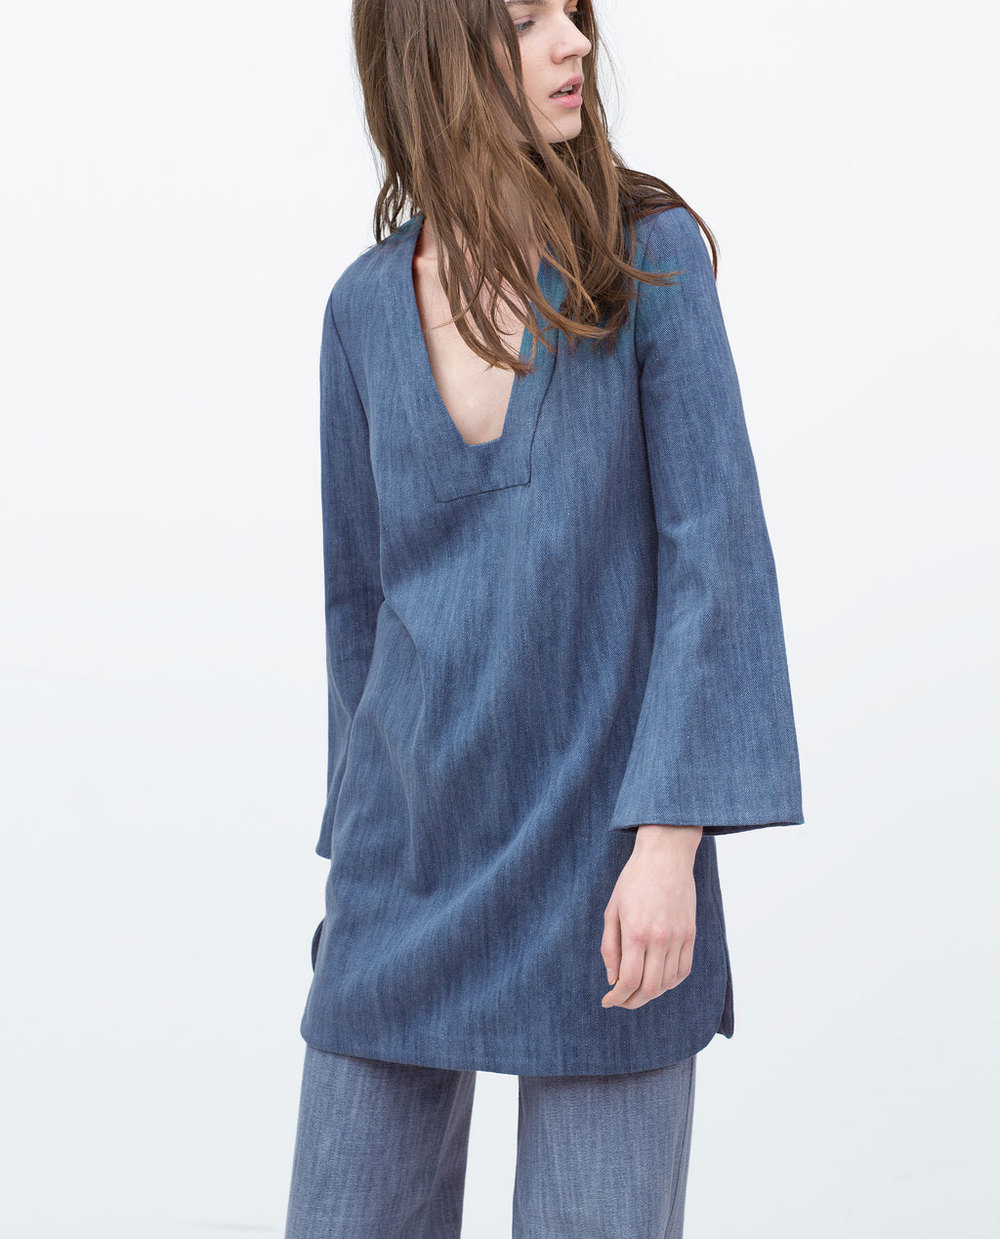 BELL SLEEVE TUNIC 49.99 USD